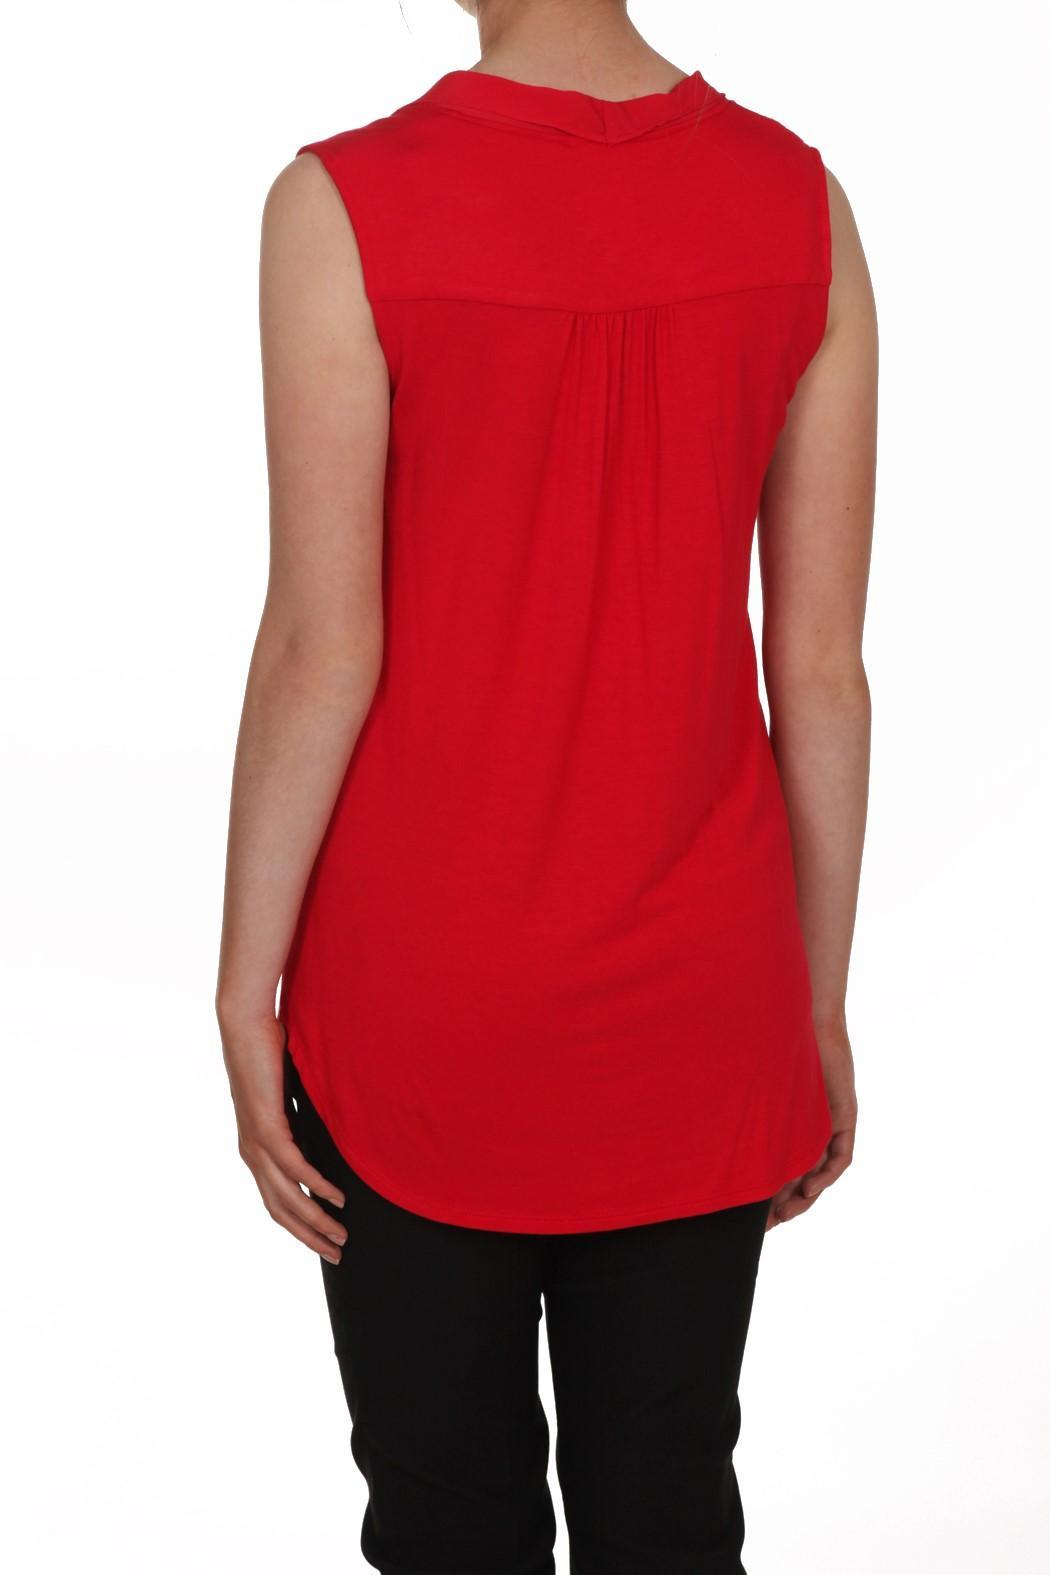 Zoe Red Sleeveless Top - Front Full Image